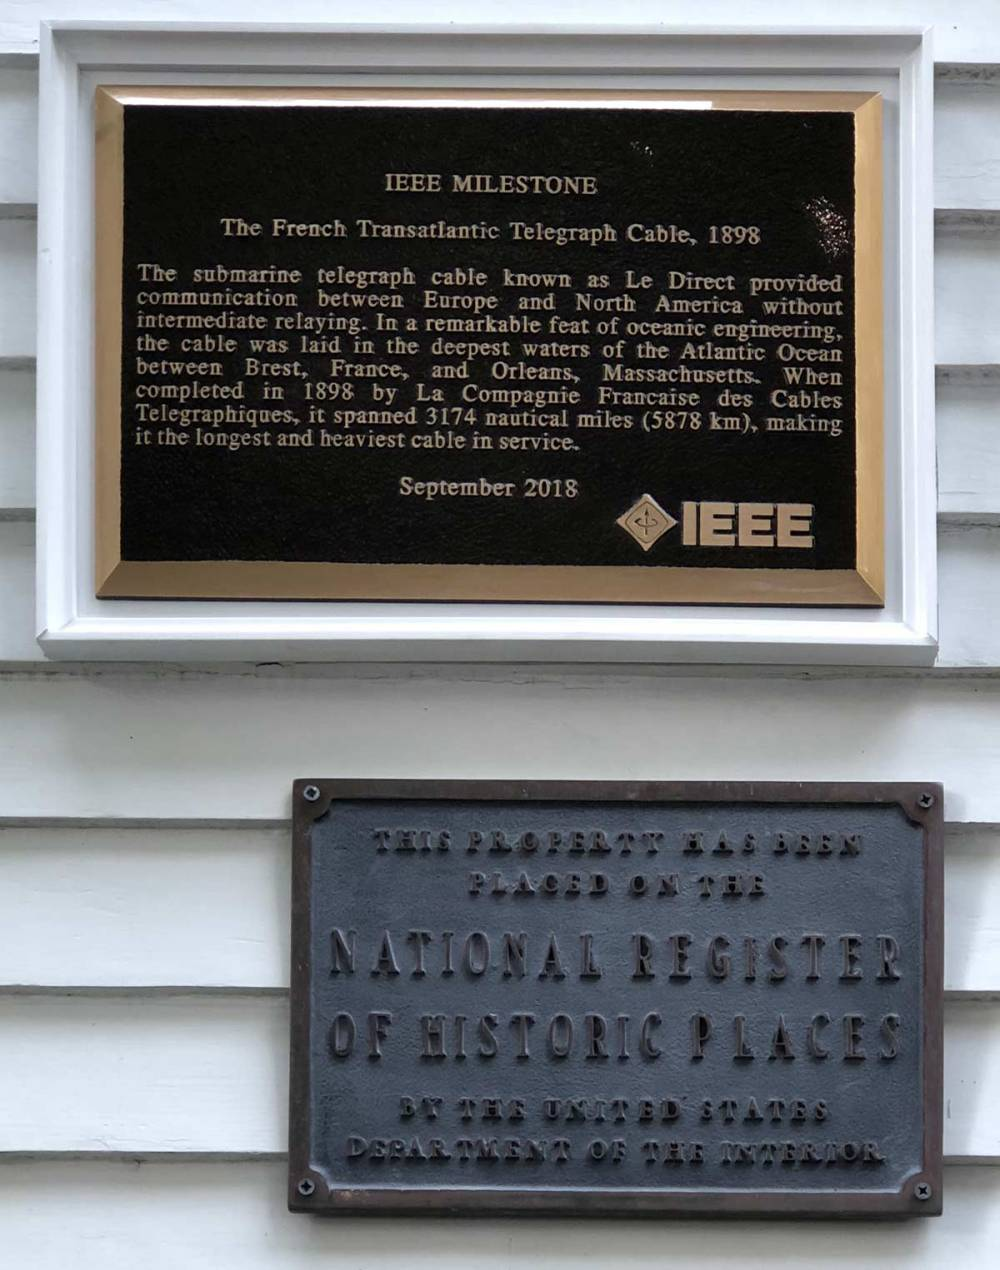 medium resolution of the milestone plaques one in english and one in french were installed one on each side of the main entrance to the museum where they joined the original